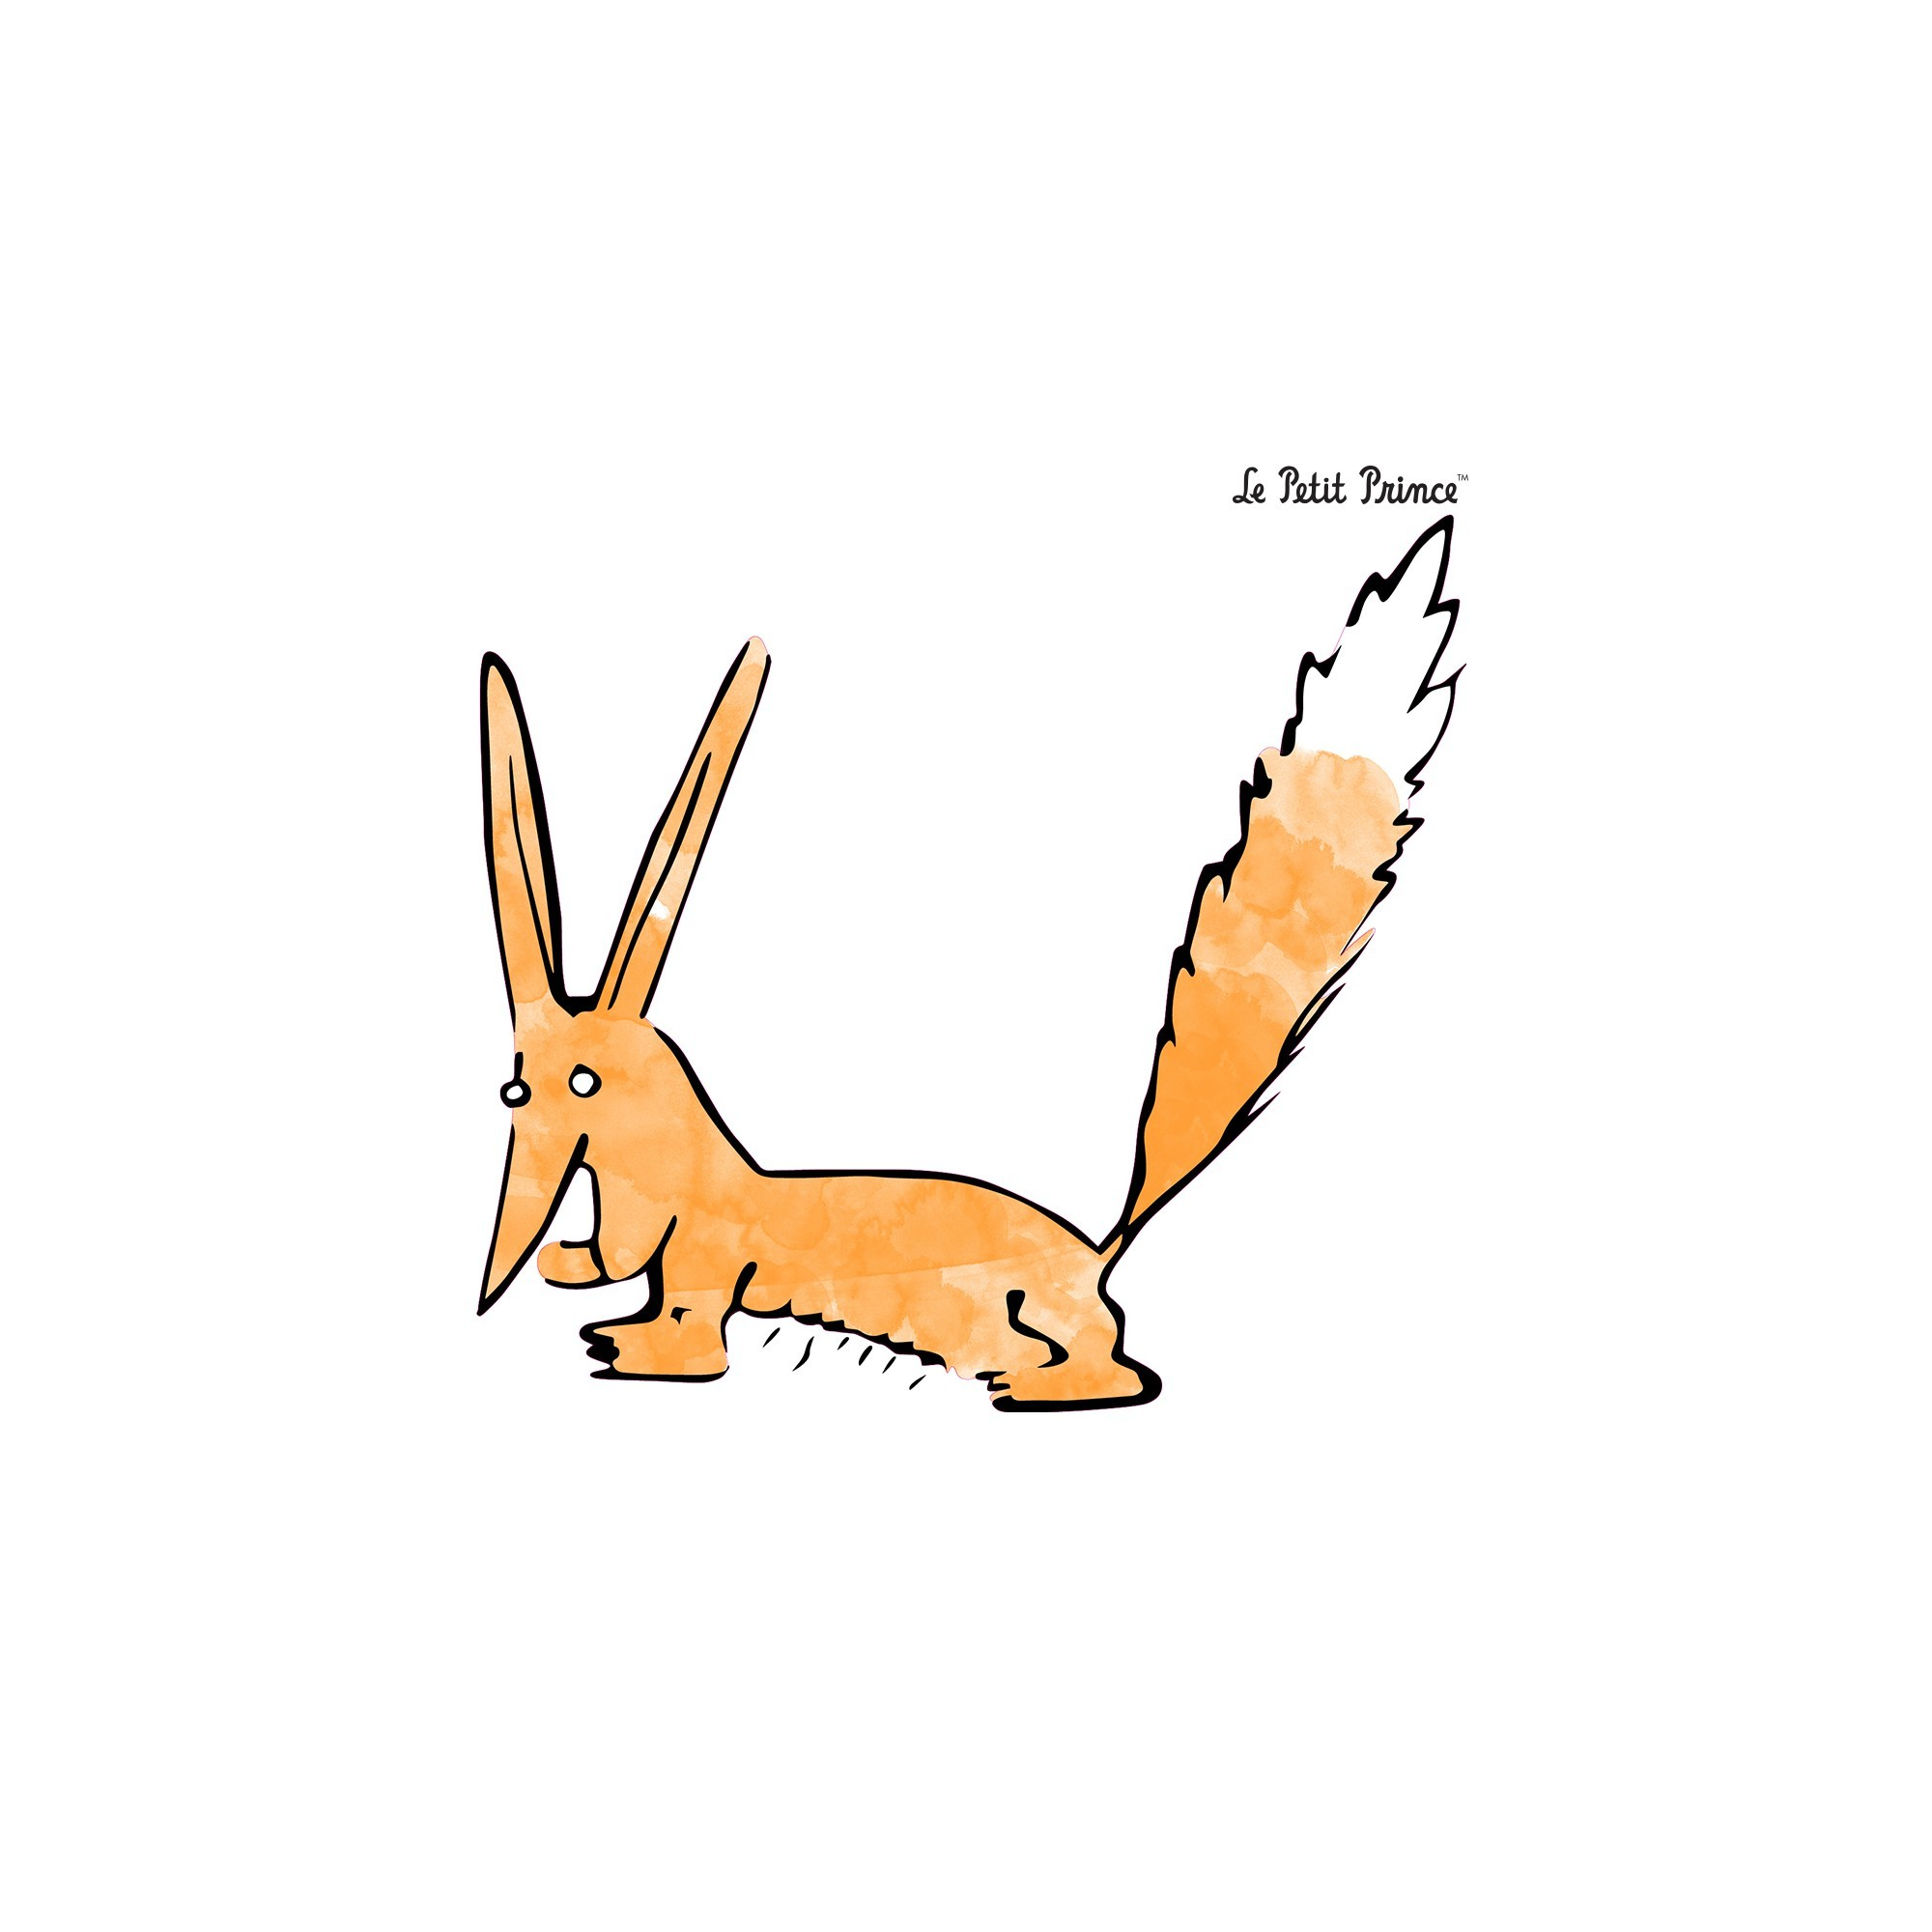 Le Petit Prince: What does the fox say?